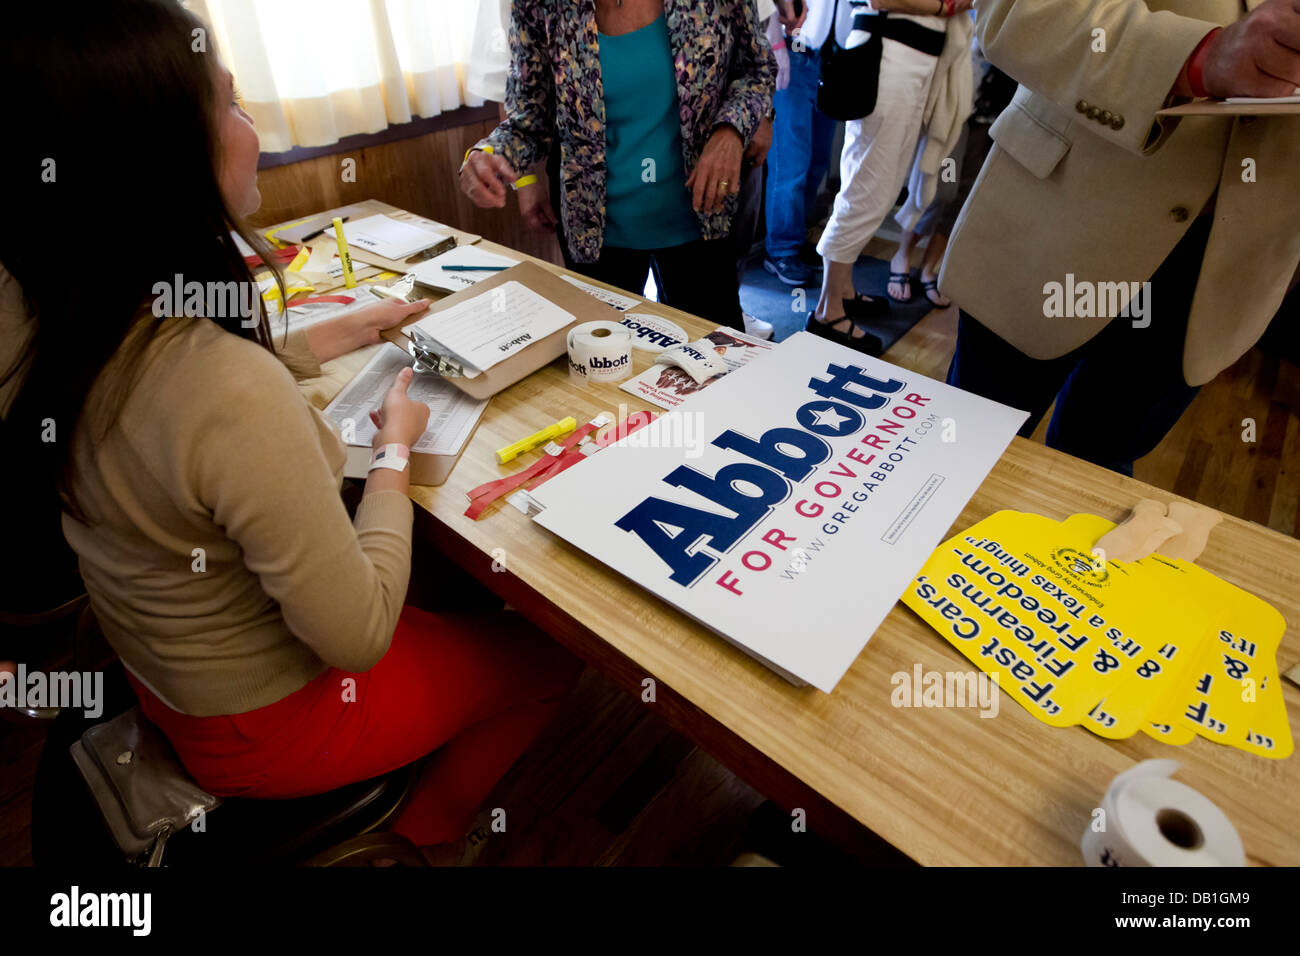 Table with campaign promotional pieces for Attorney General Greg Abbott who is running for Governor of Texas as - Stock Image